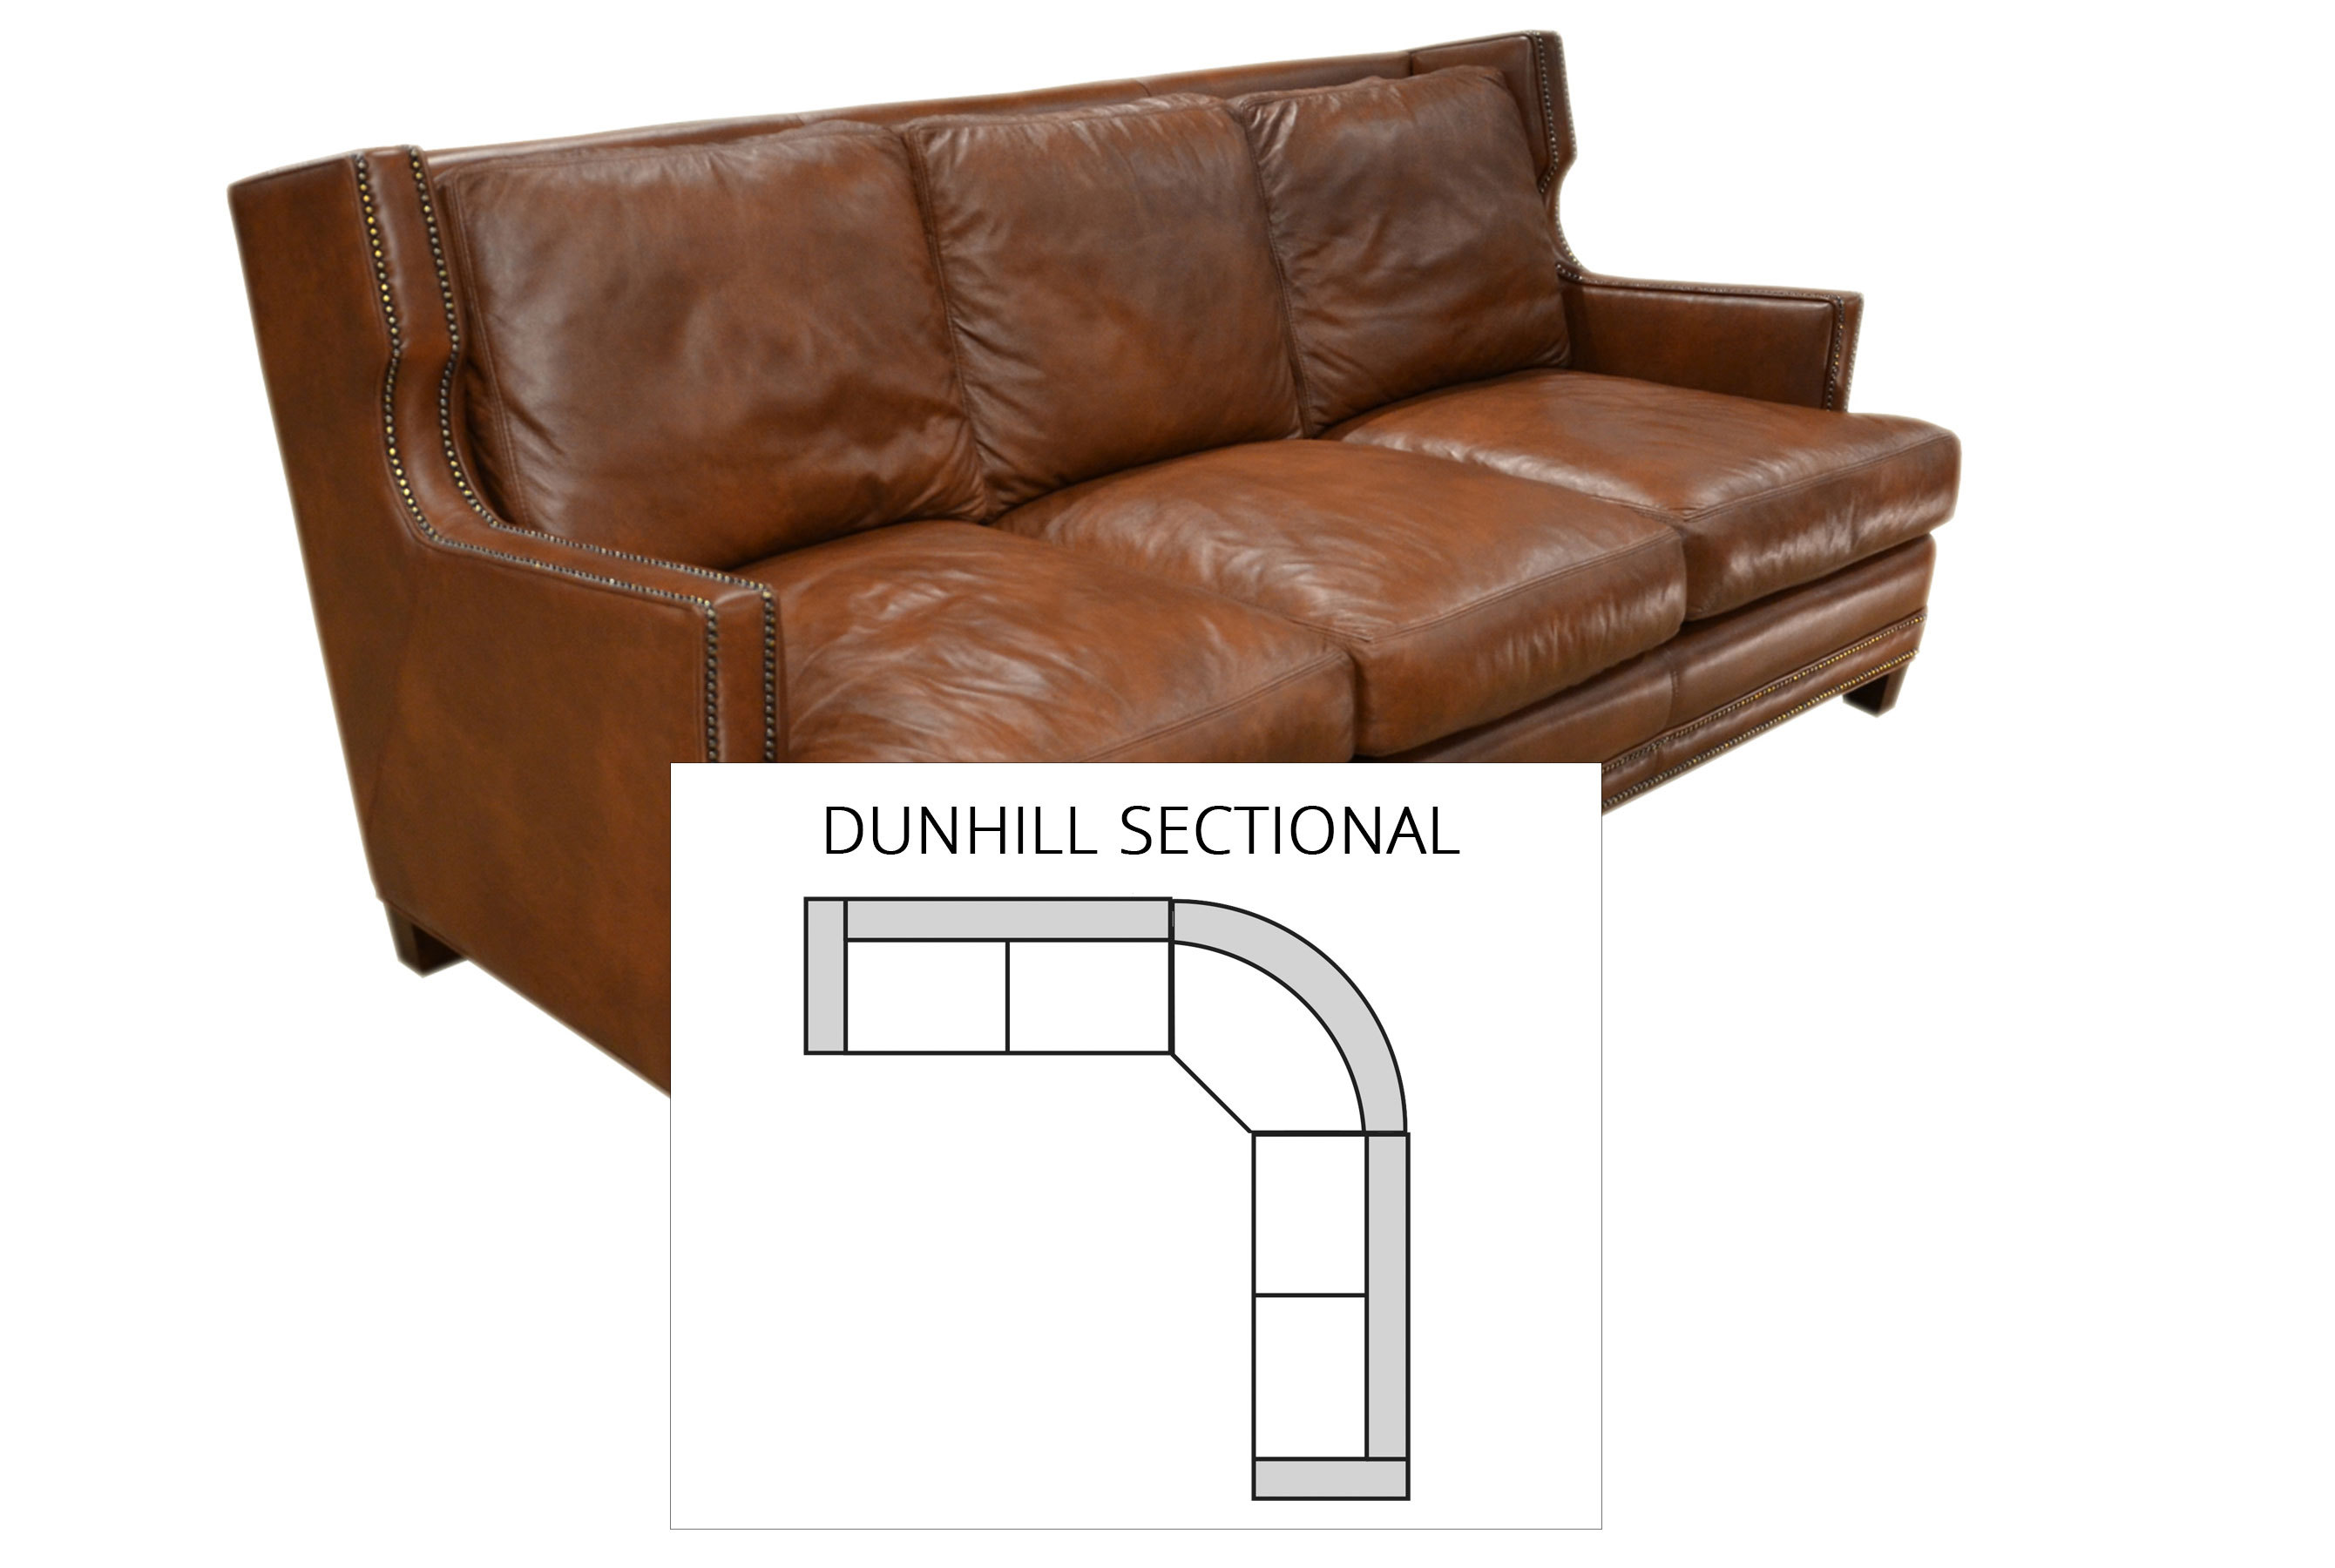 Dunhill Sectional All Leather Sofas And Sectionals